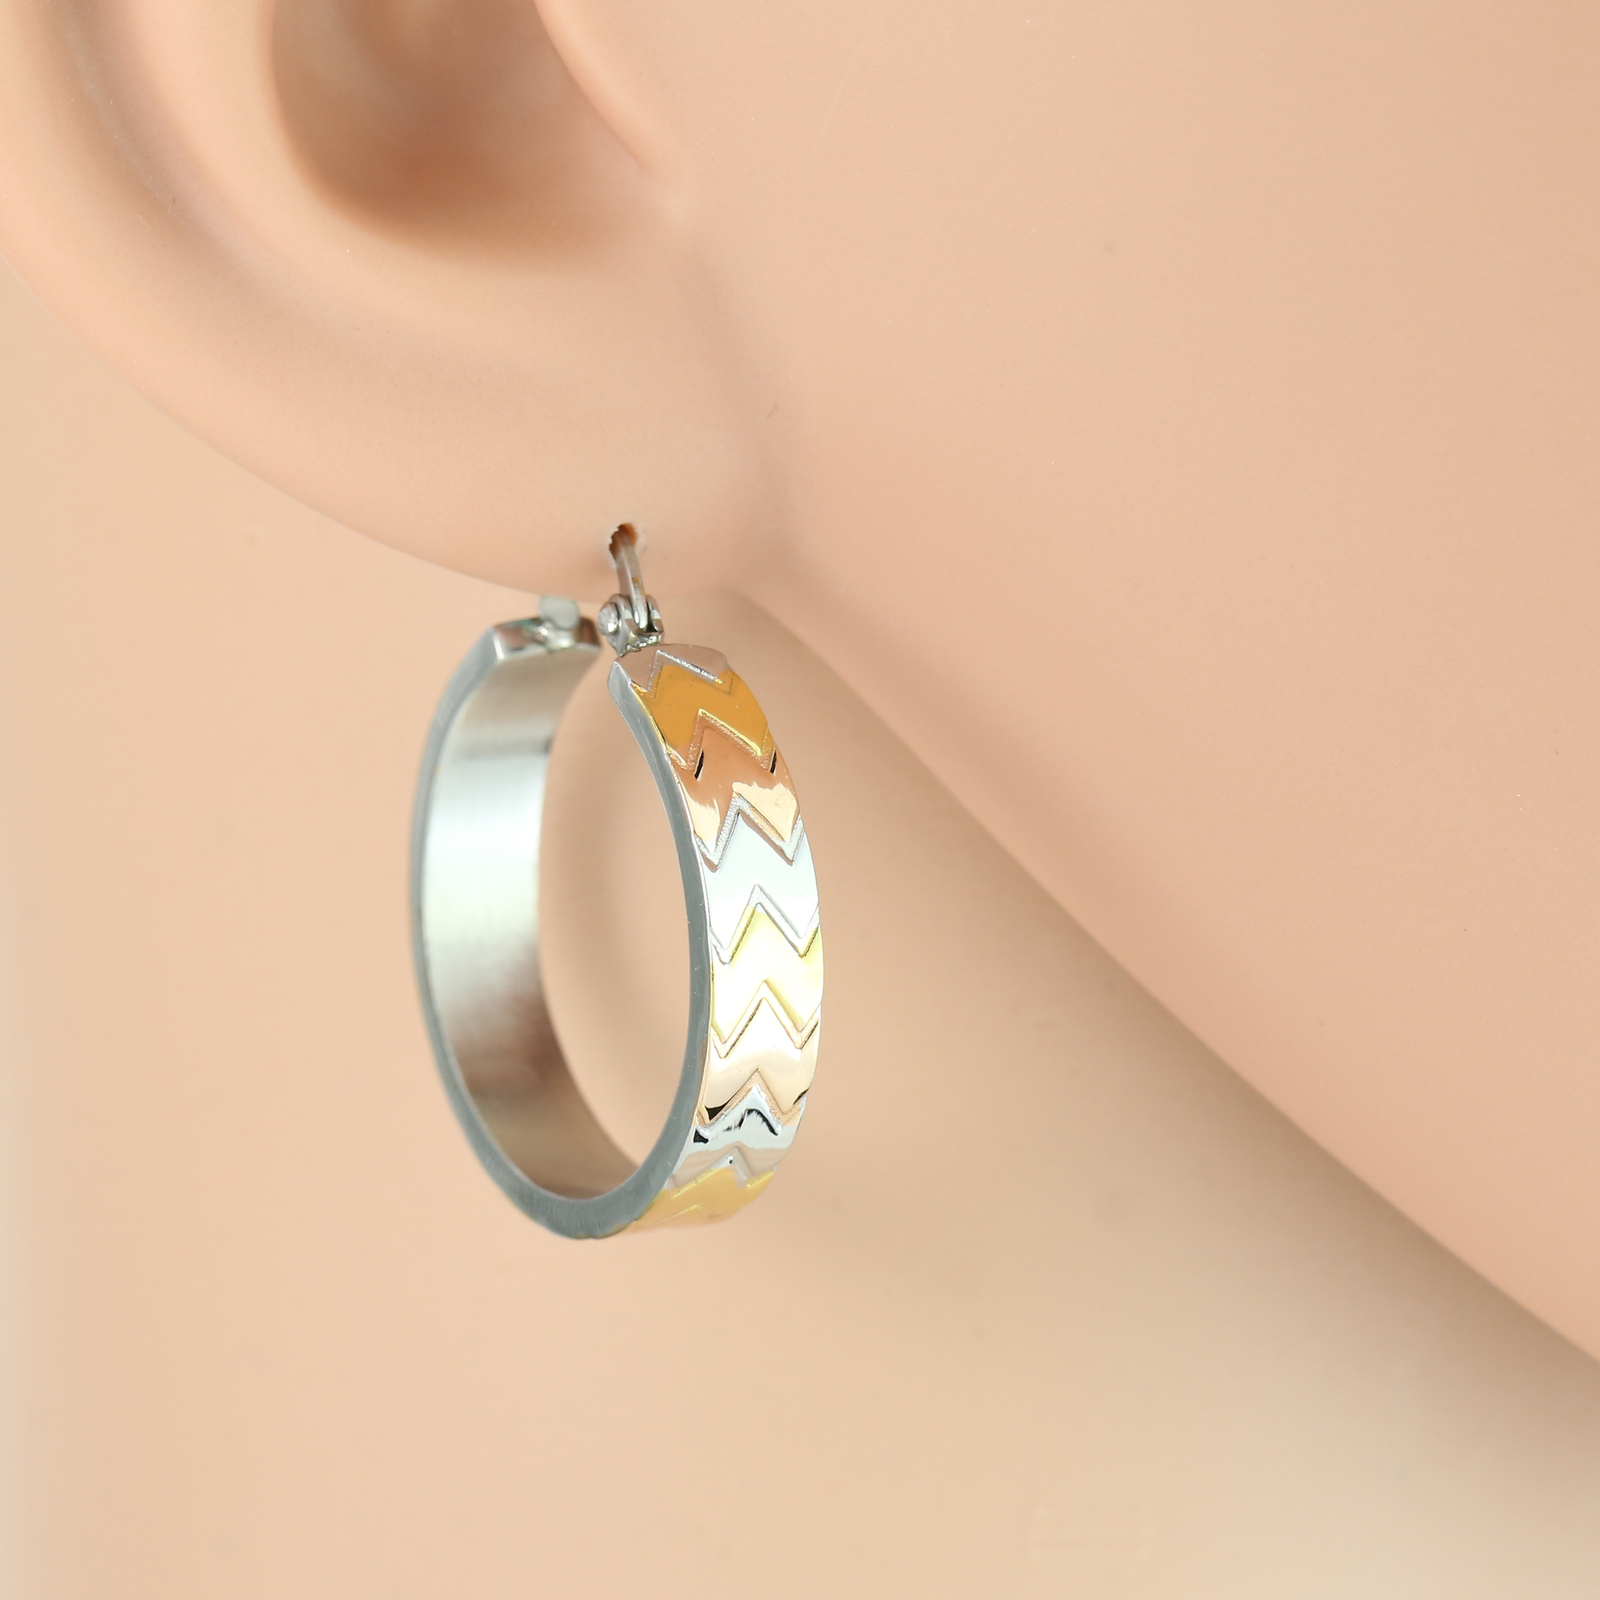 Chevron Design Tri-Color Silver, Gold & Rose Tone Hoop Earrings- United Elegance